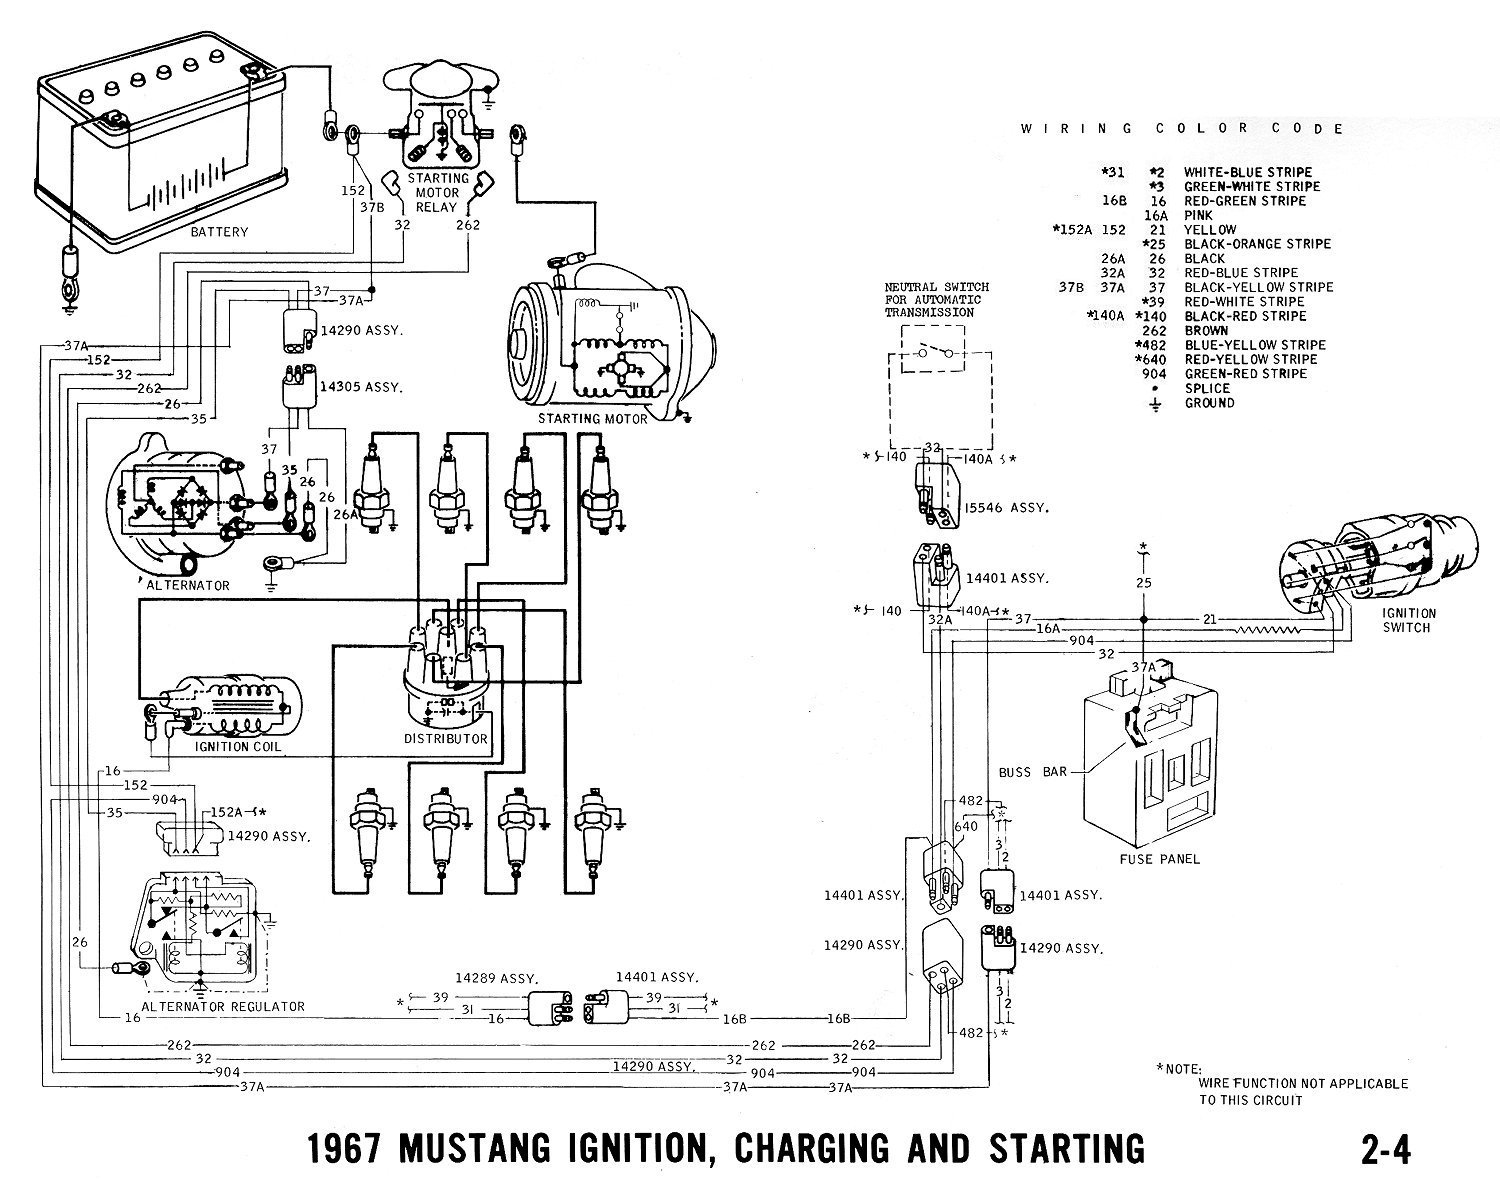 69 mustang radio wiring diagram picture wiring diagram